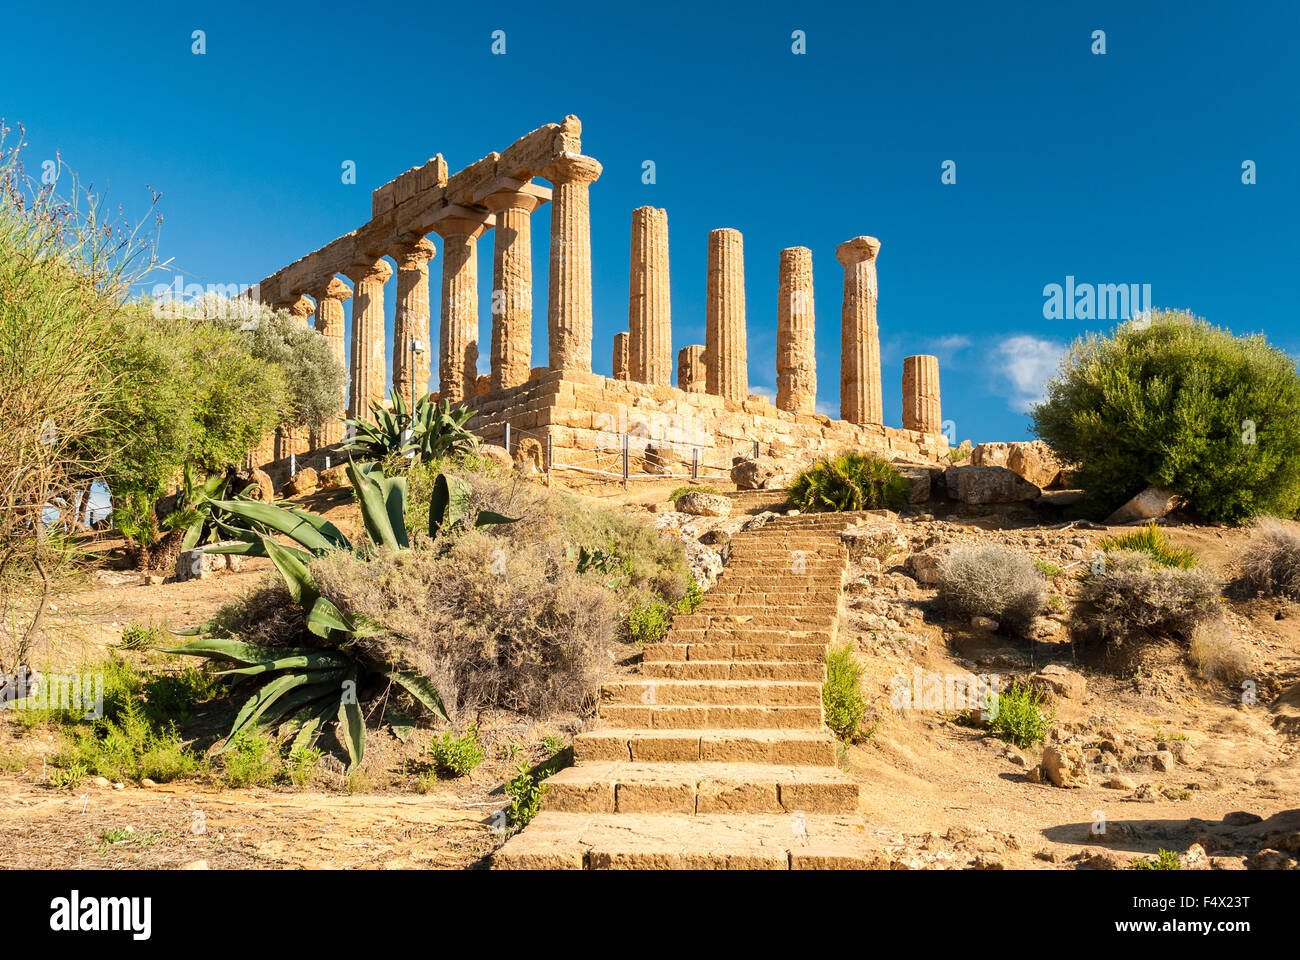 The temple of Juno, in the Valley of the Temples of Agrigento - Stock Image